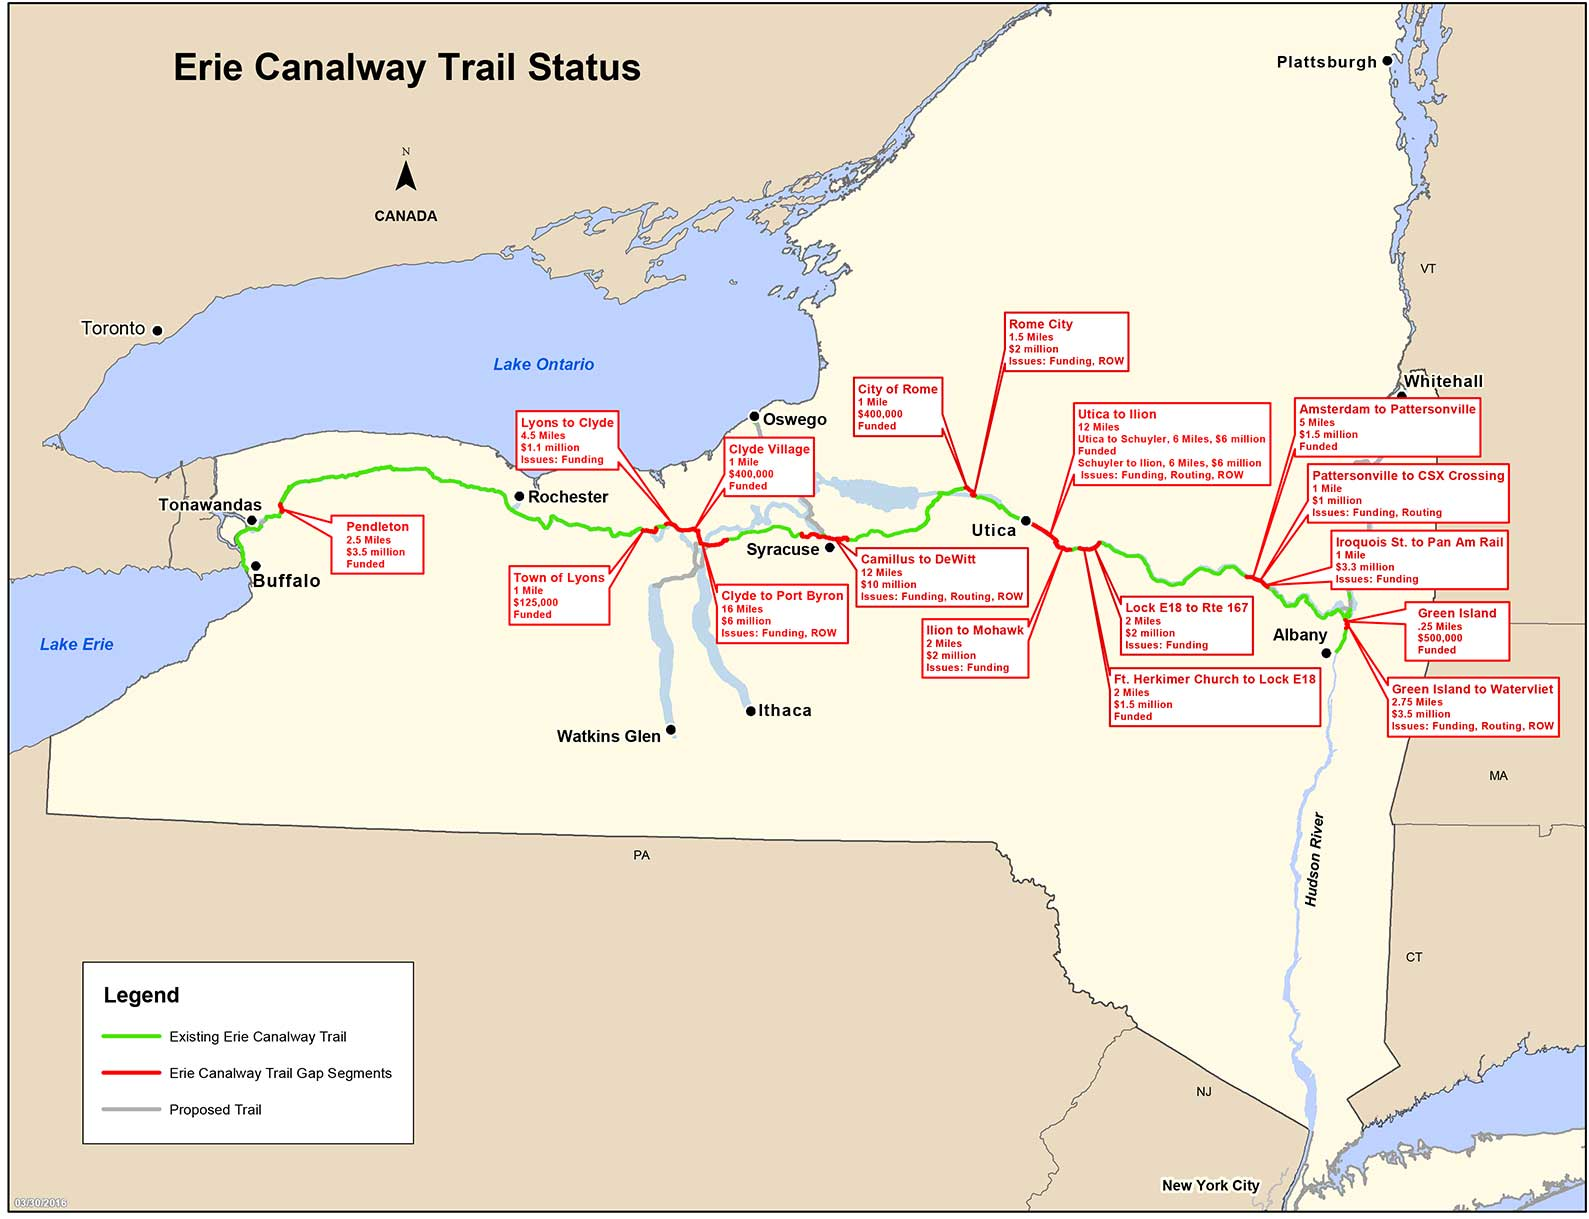 Parks & Trails New York :: Close the Gaps - Statewide Trail Network